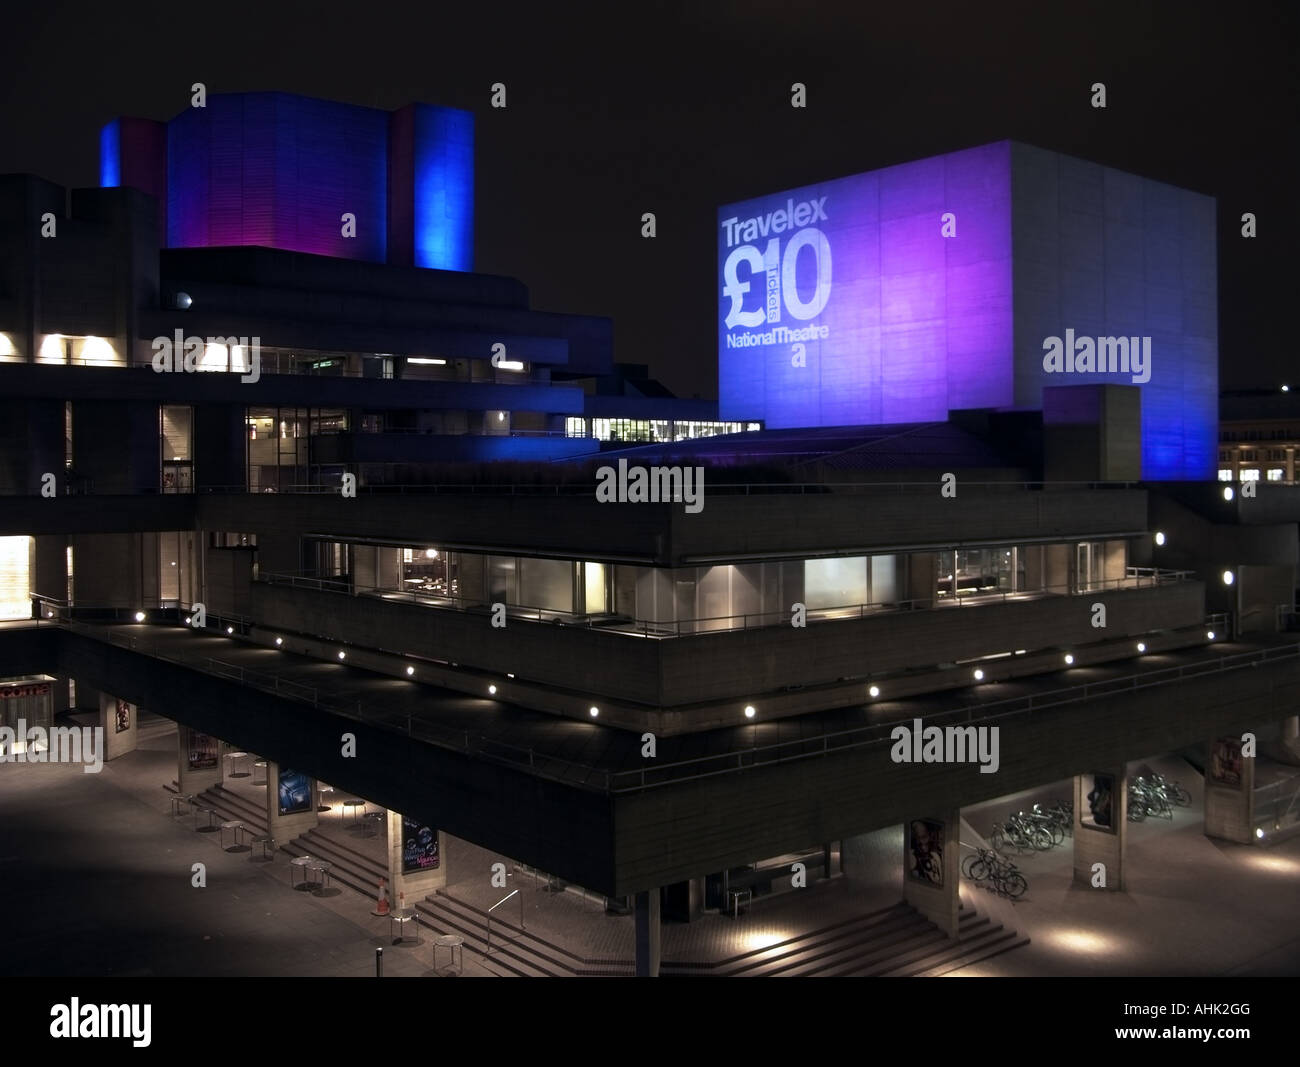 National Theatre, London, UK - Stock Image